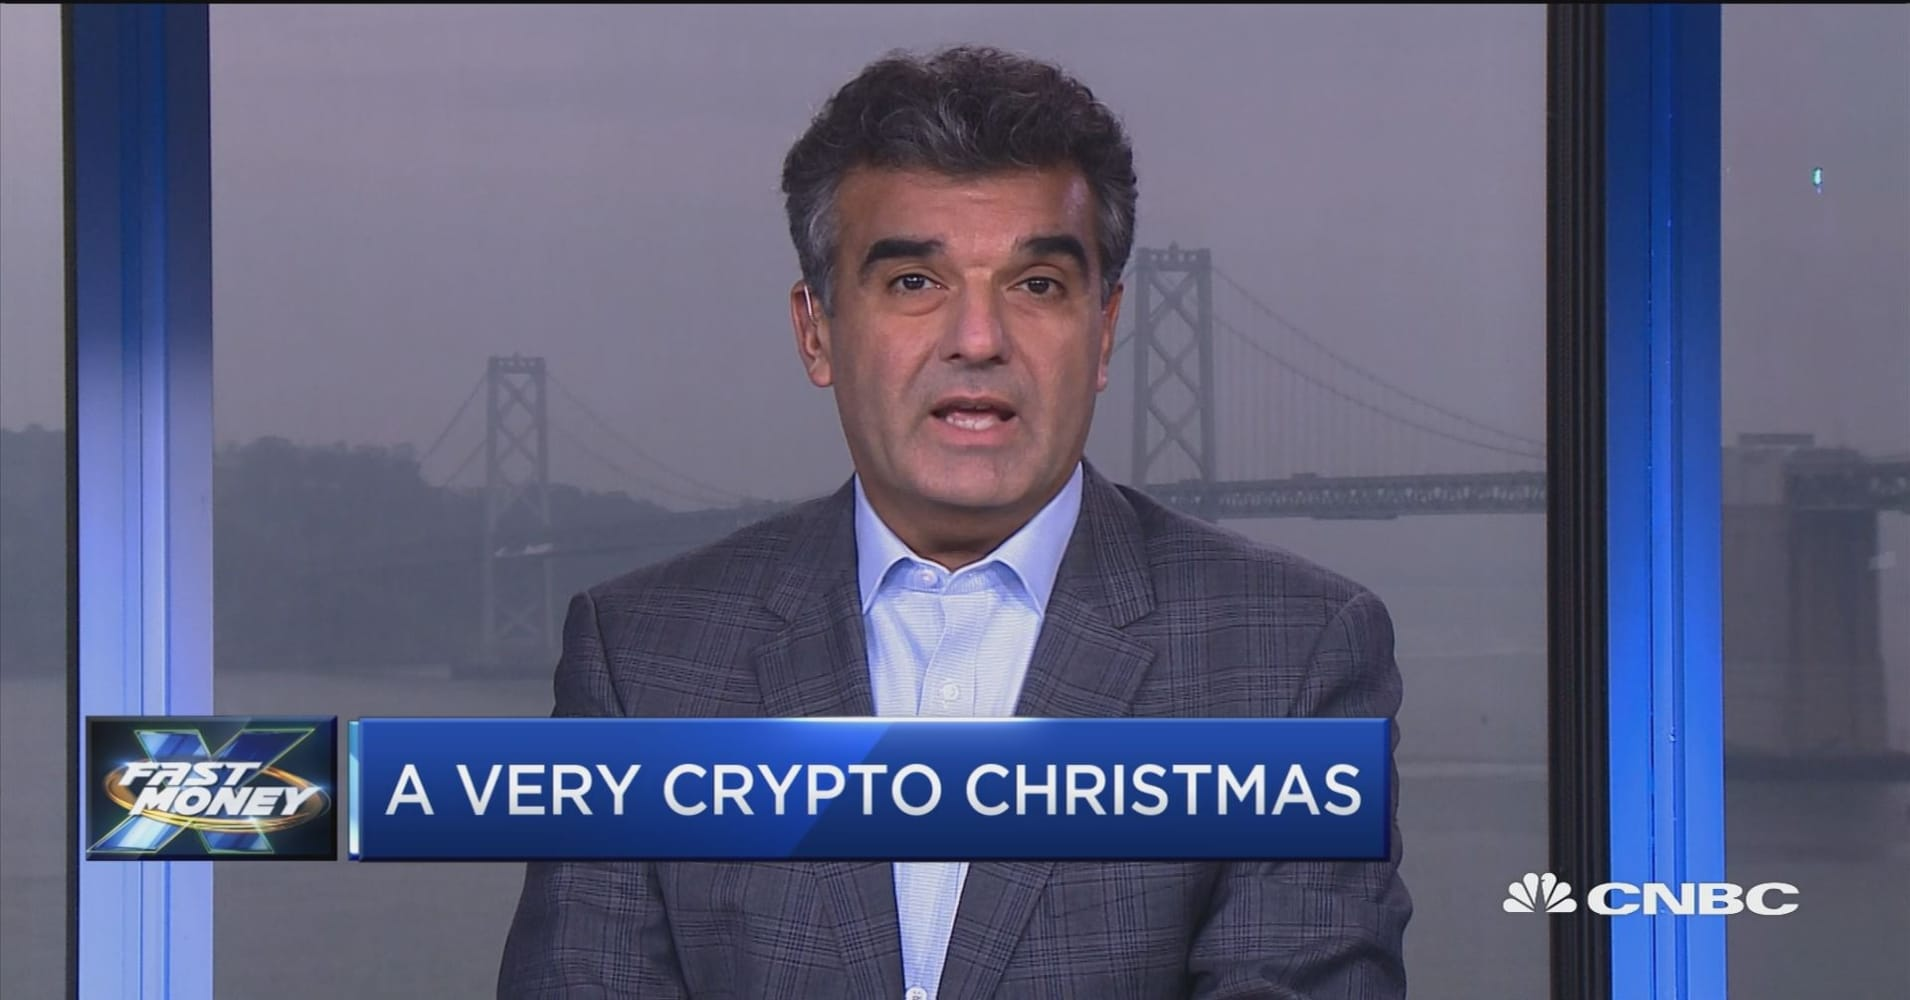 The Santa Claus rally has come for bitcoin, here's what Coinbase's president sees for crypto in 2019